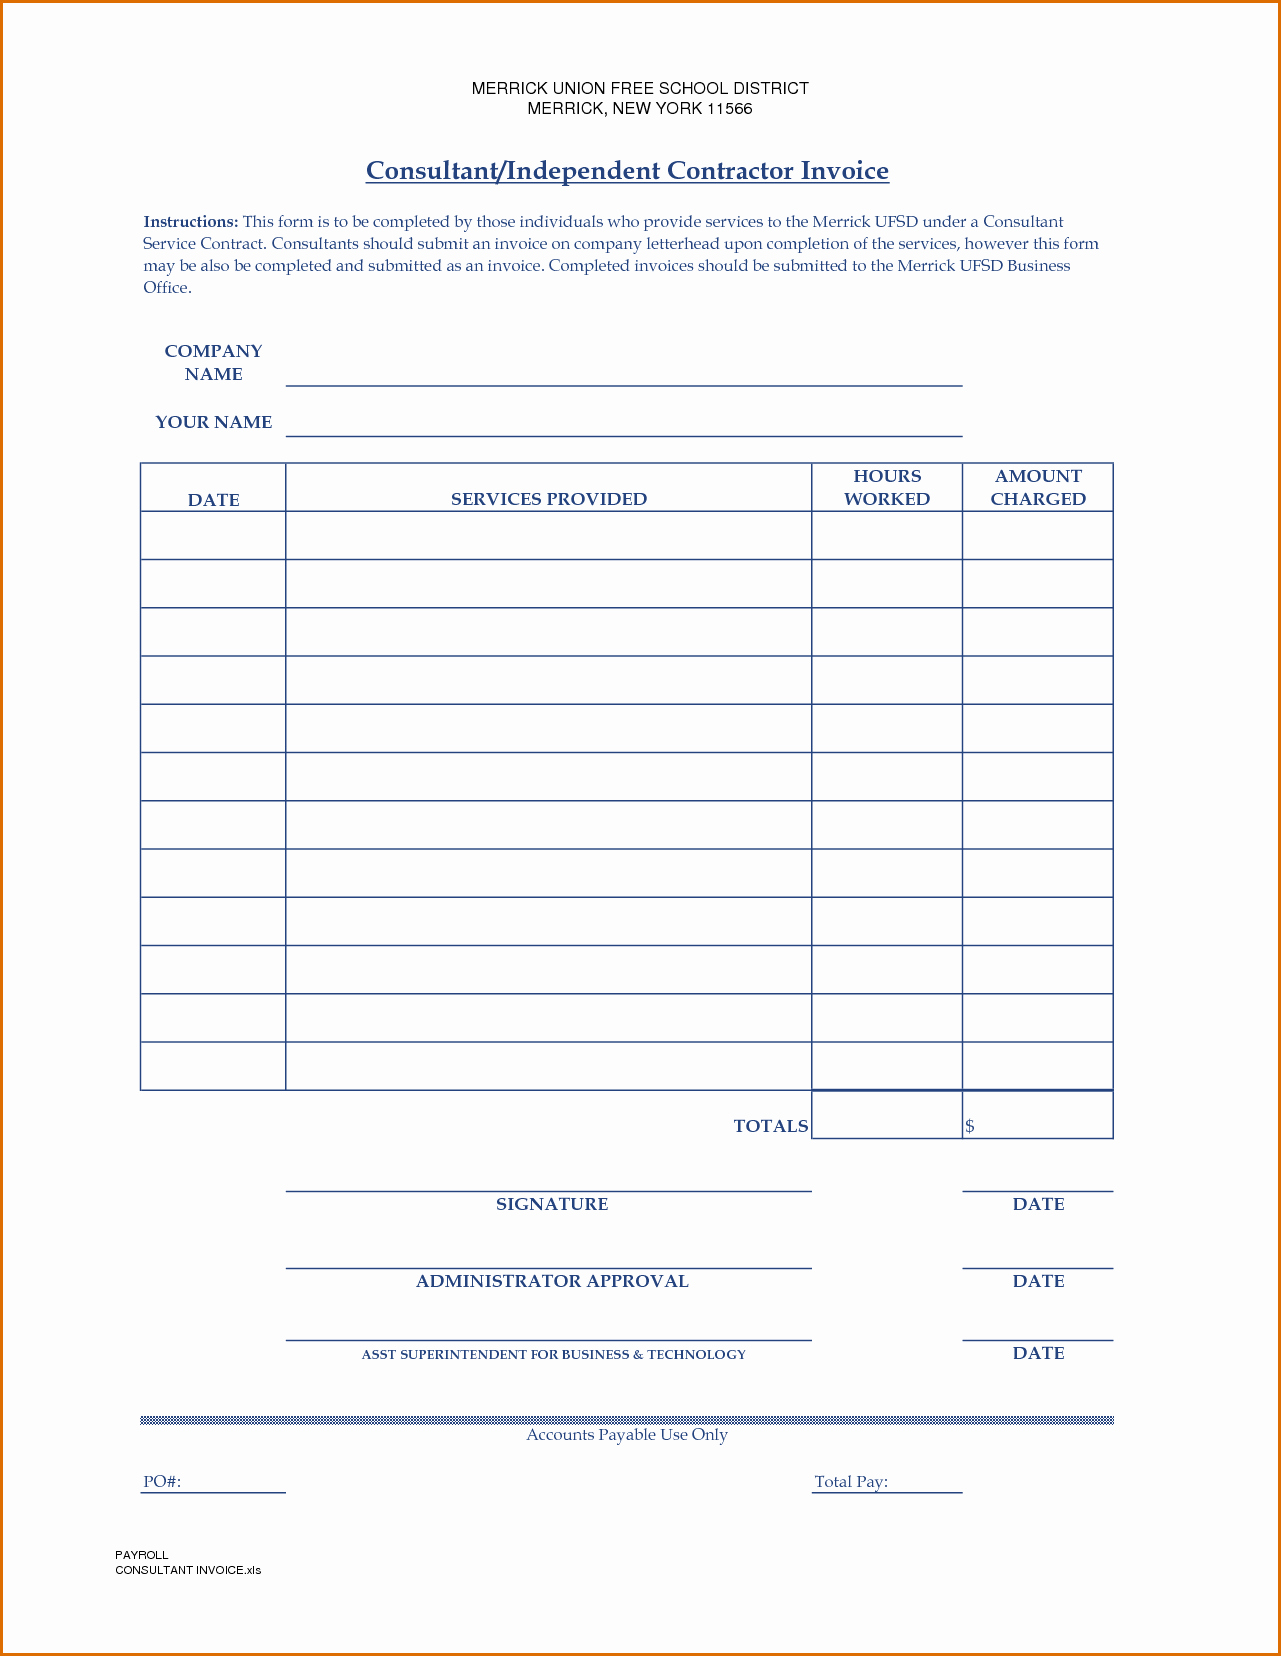 Independent Contractor Invoice Template Fresh 10 Independent Contractor Invoice Template